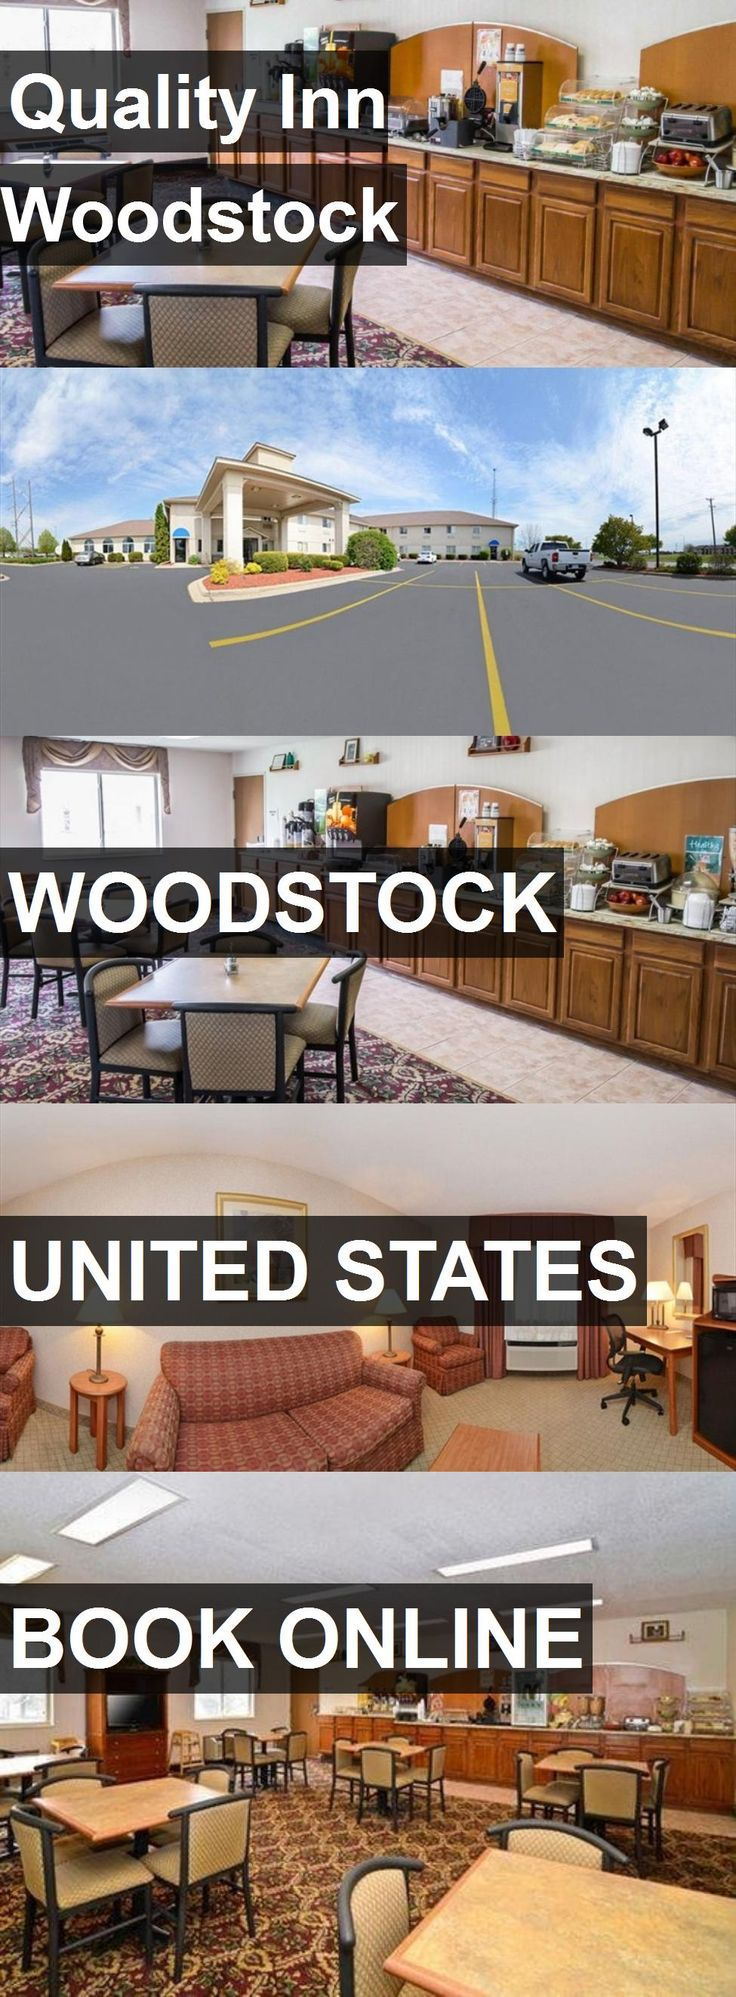 Hotel Quality Inn Woodstock in Woodstock, United States. For more information, photos, reviews and best prices please follow the link. #UnitedStates #Woodstock #QualityInnWoodstock #hotel #travel #vacation